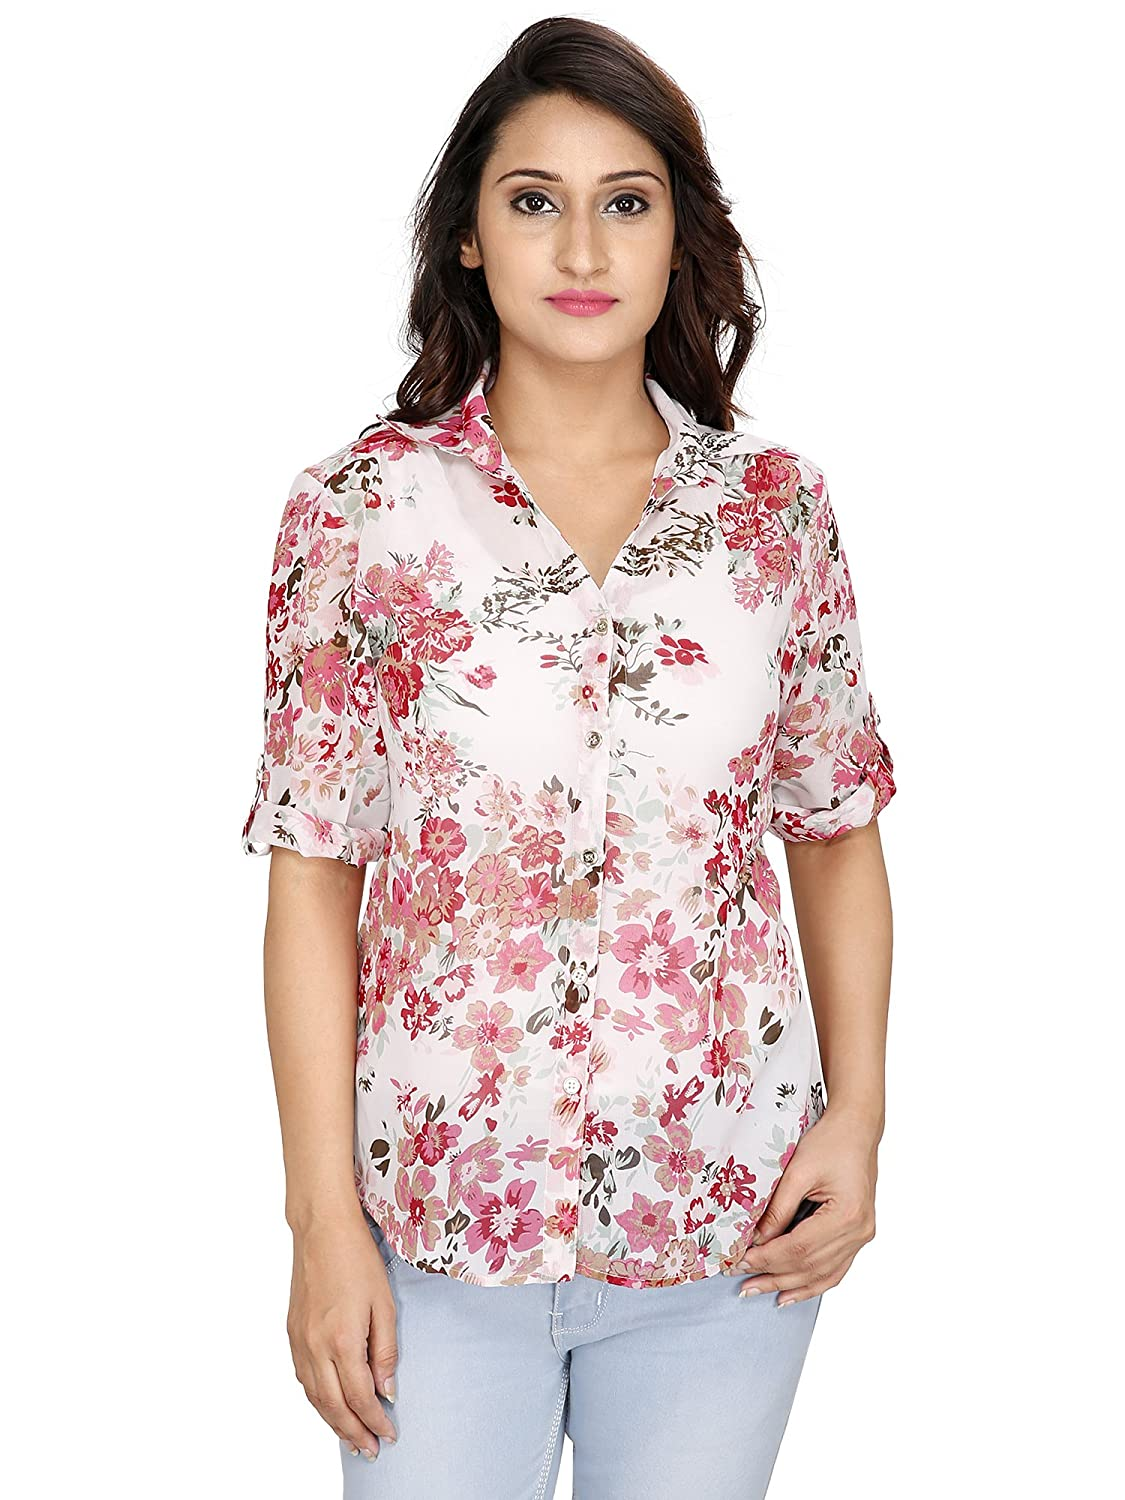 2Day Women's Georgette Printed Top